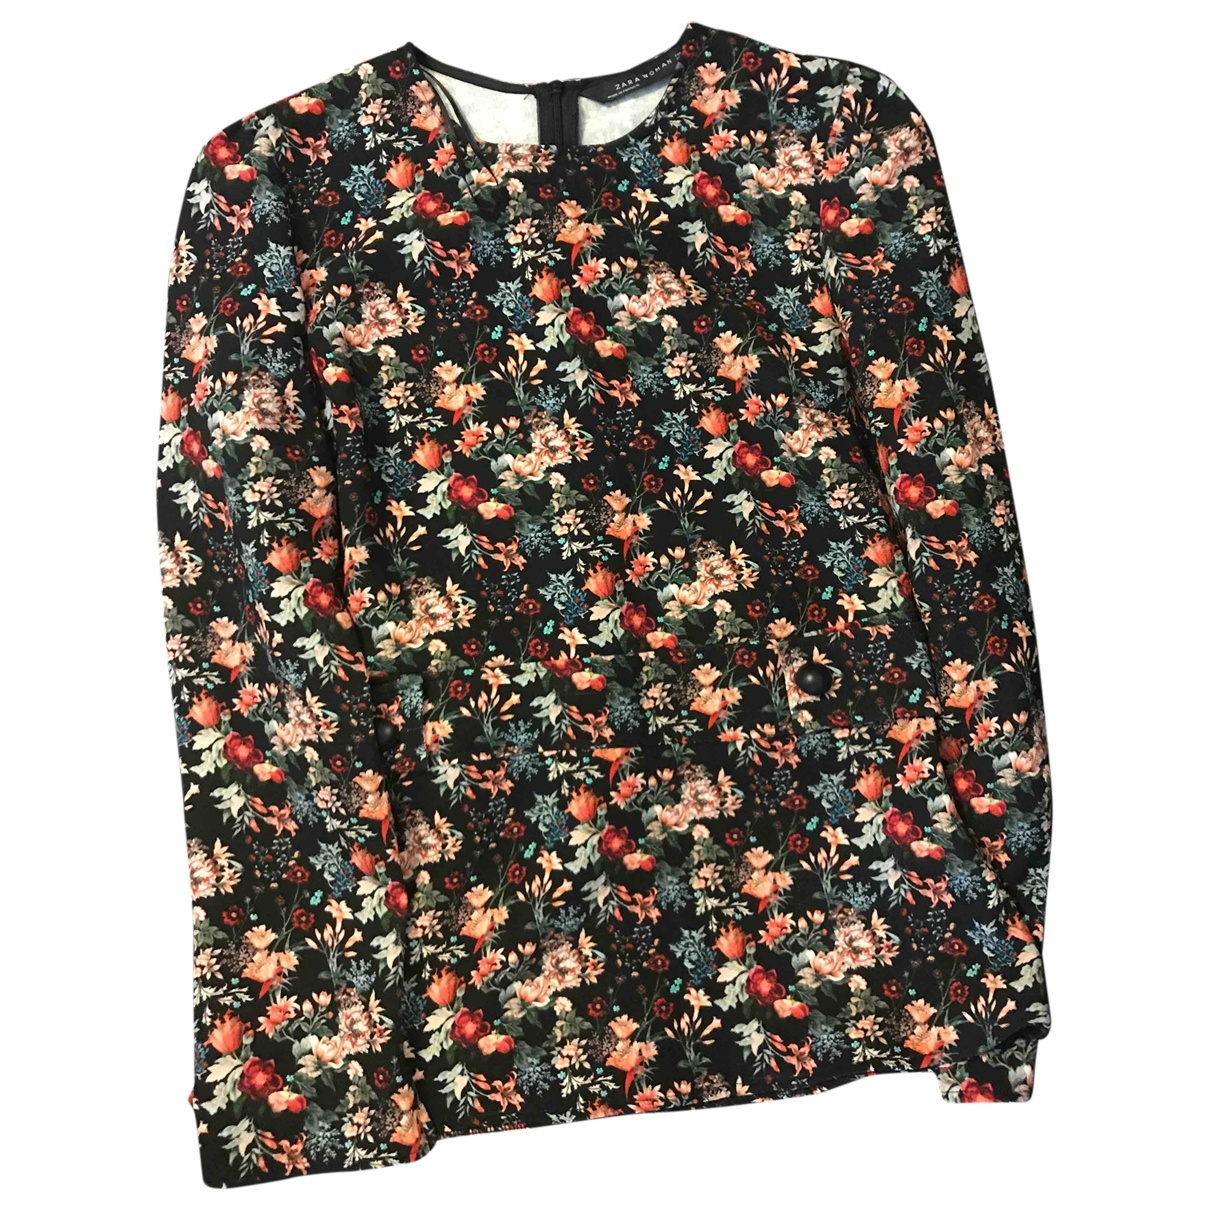 Zara \N Multicolour  top for Women 8 UK